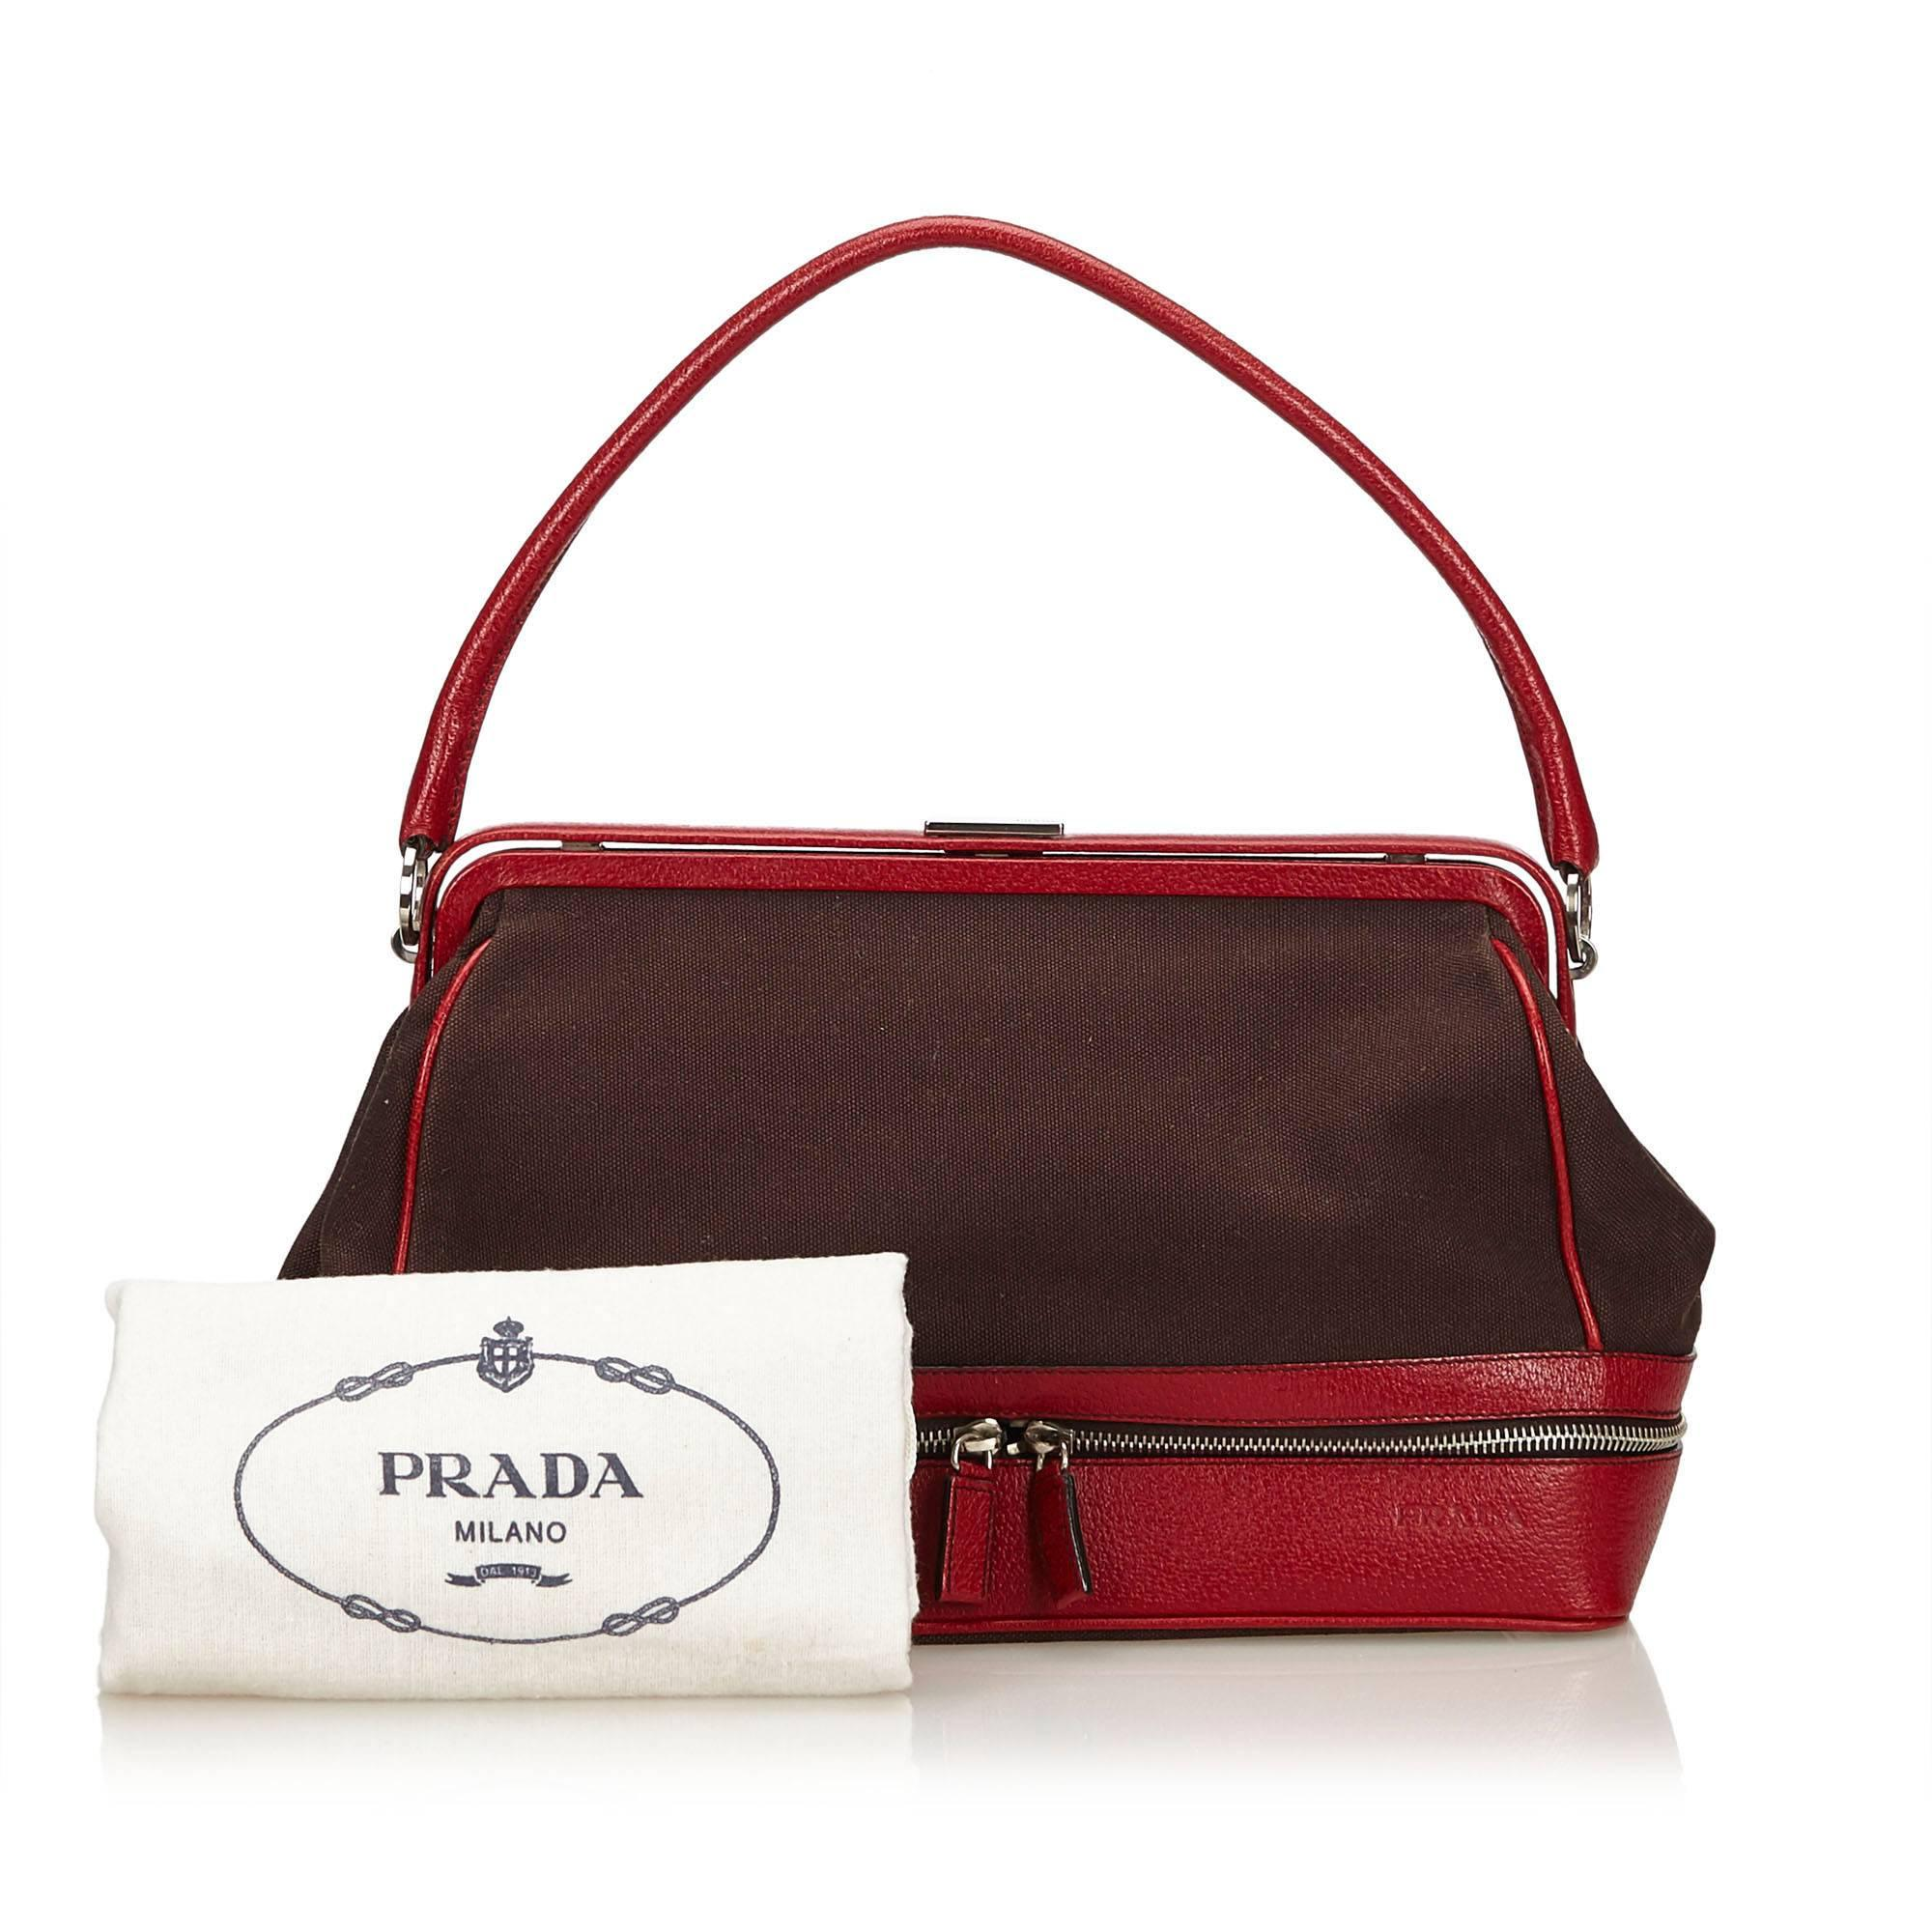 Prada Russo Red Cinghi Leather & Beige Canapa Canvas Bowler Bag W. Dust Bag vWbc4TWZ3K